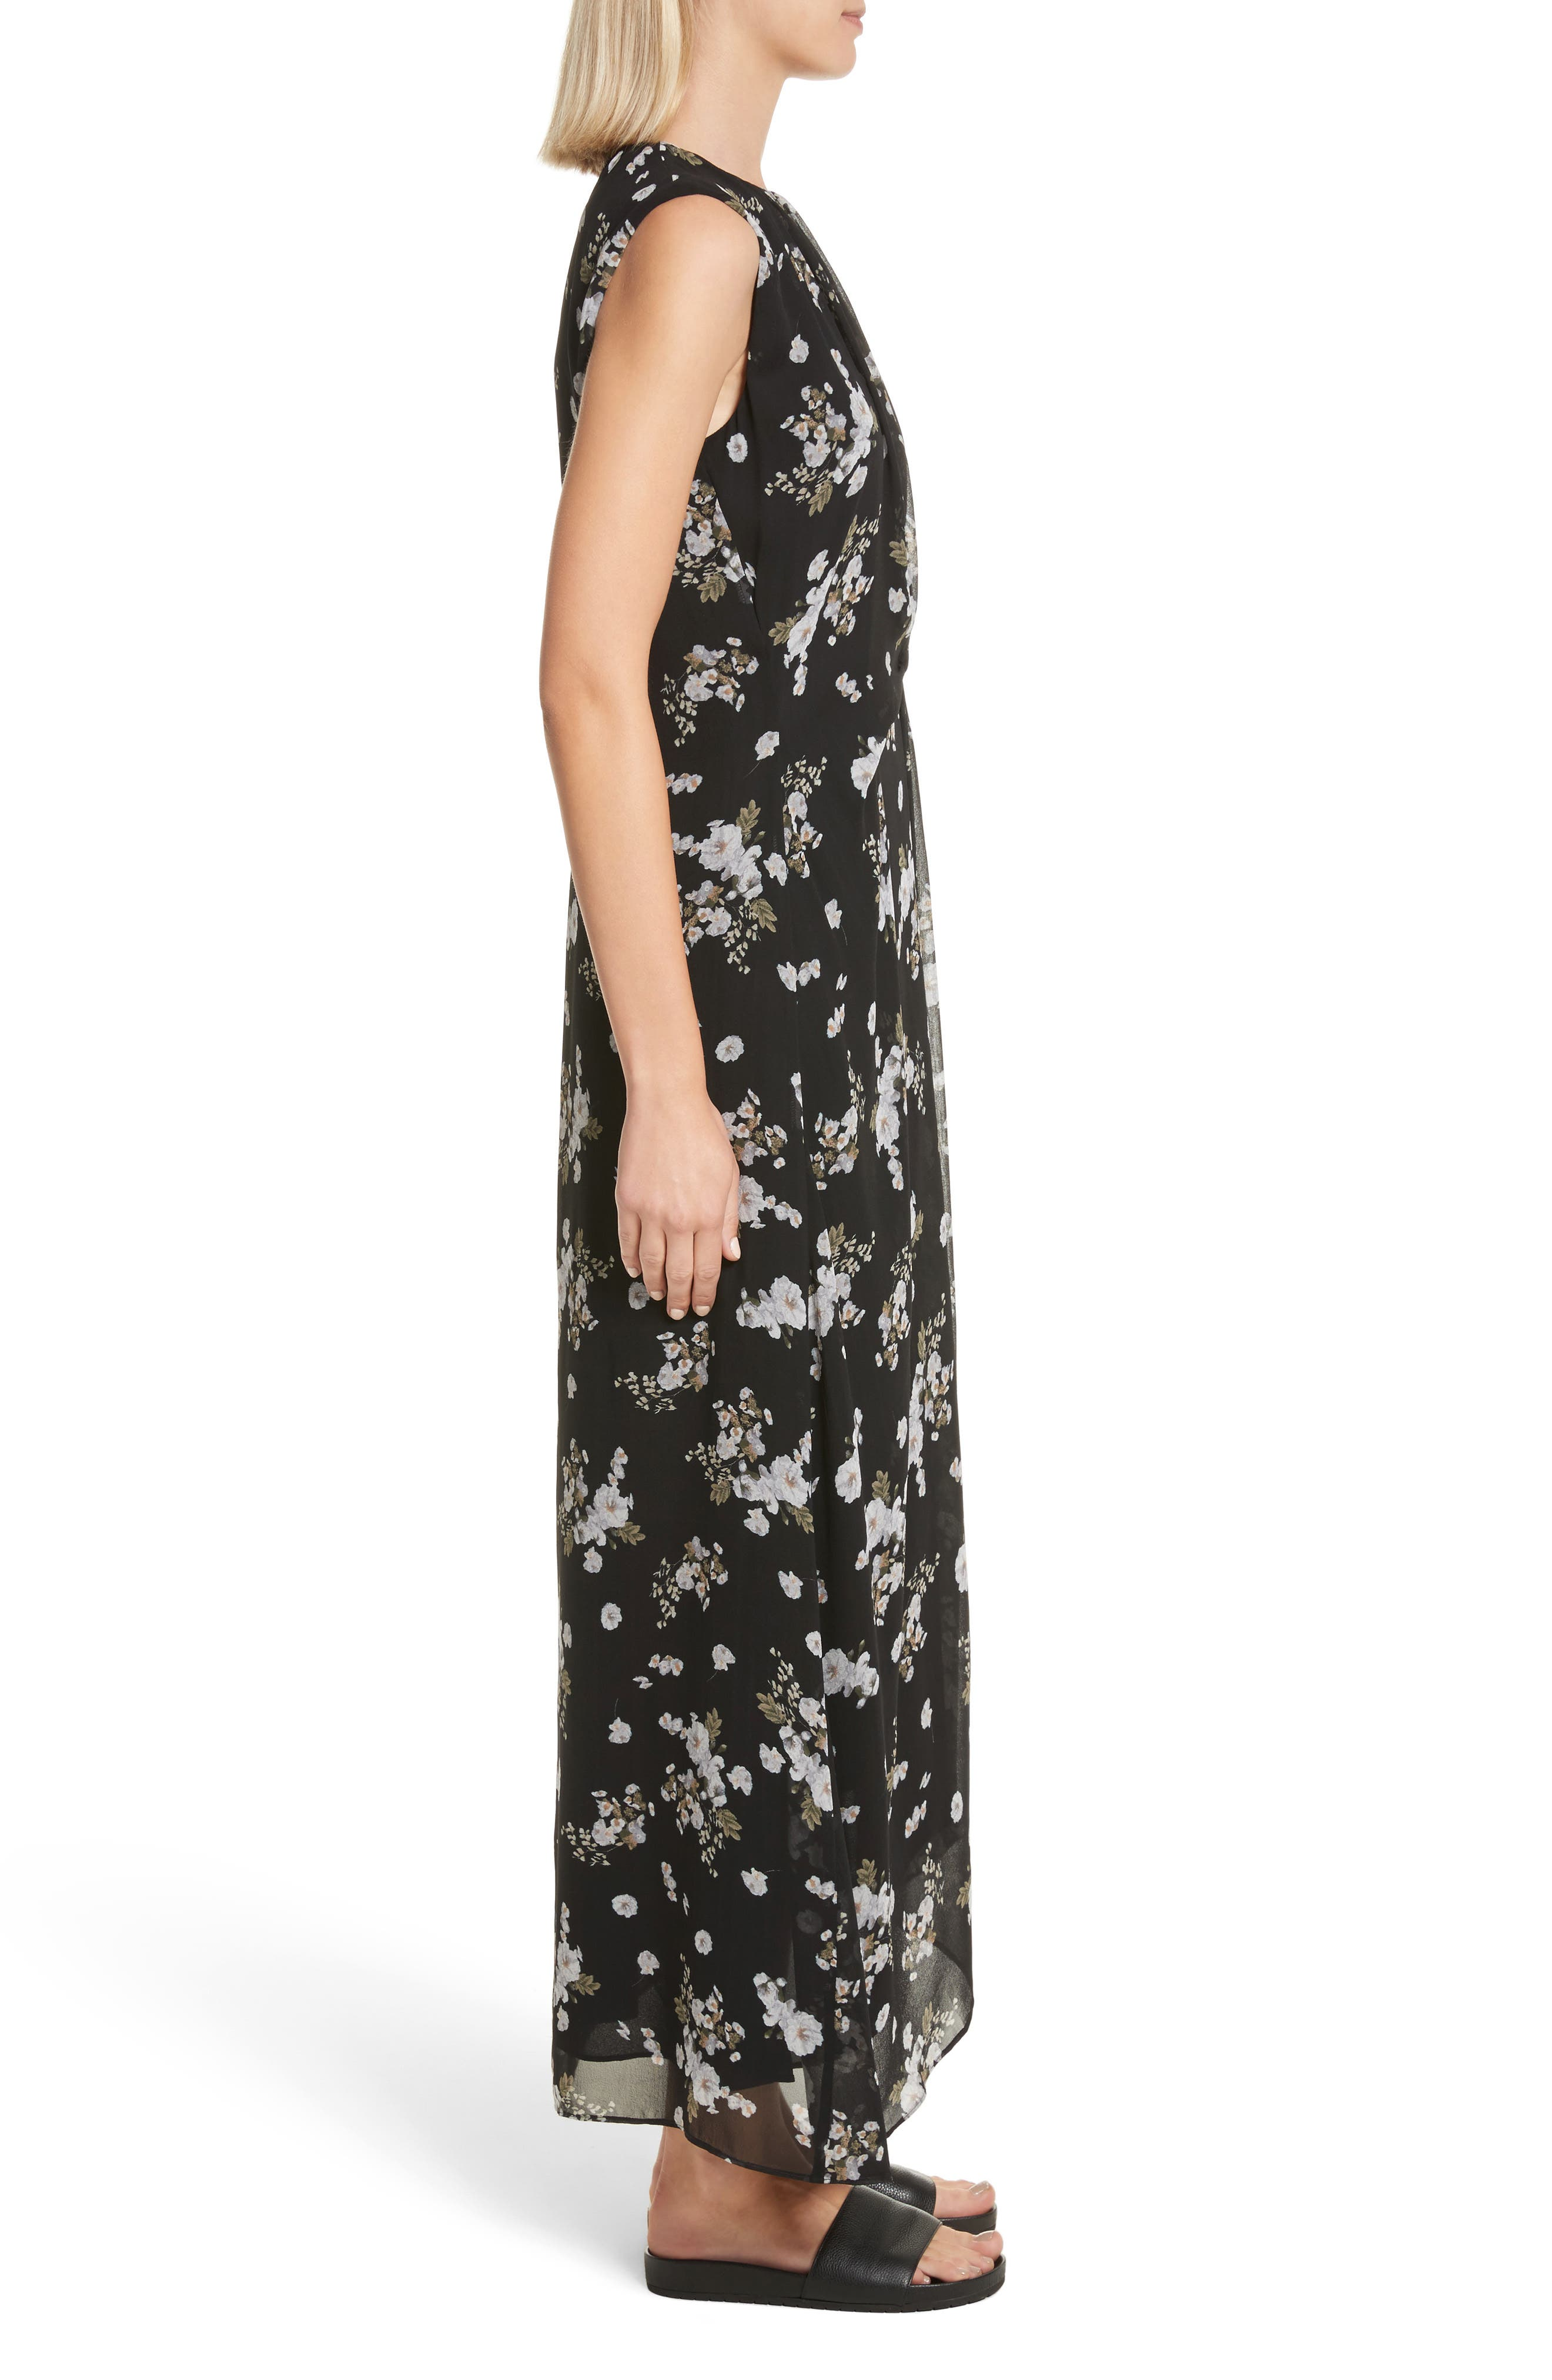 Tossed Floral Side Drape Silk Maxi Dress,                             Alternate thumbnail 3, color,                             Black